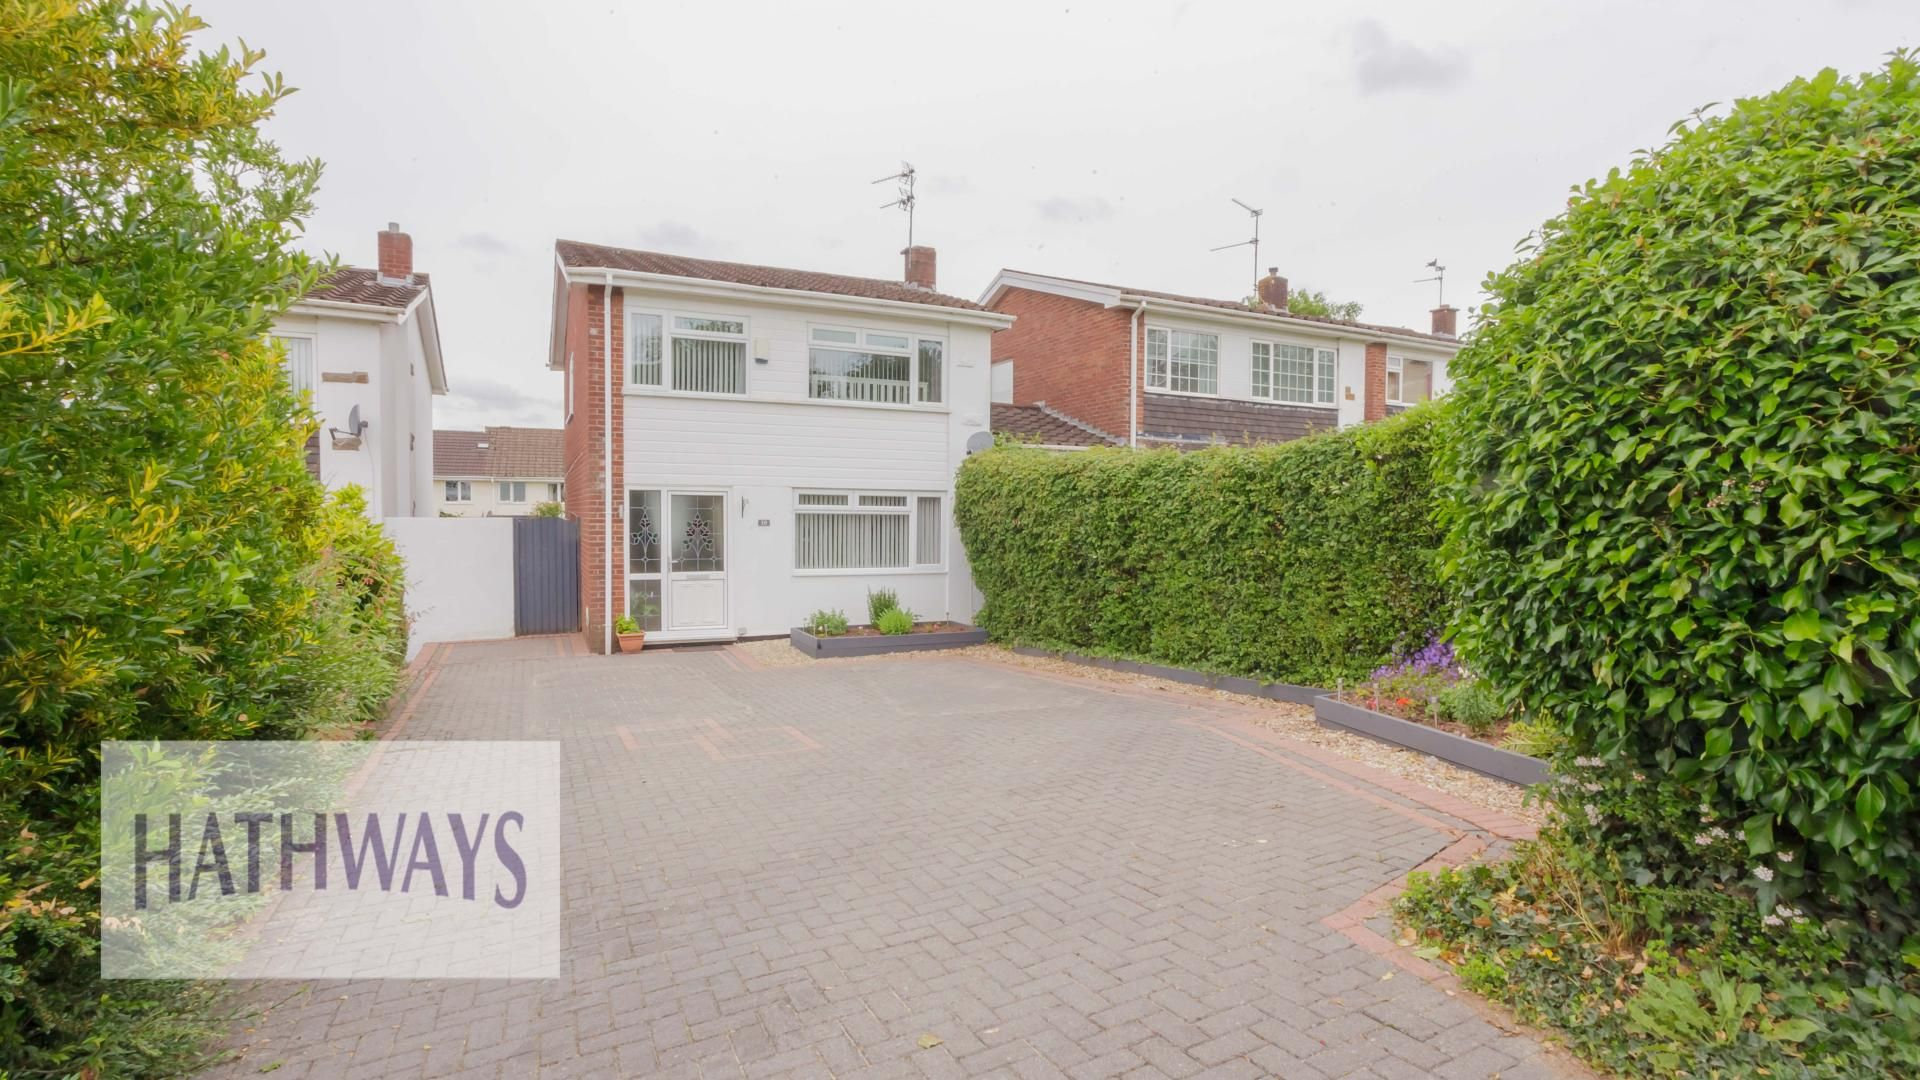 3 bed house for sale in Roman Reach, NP18